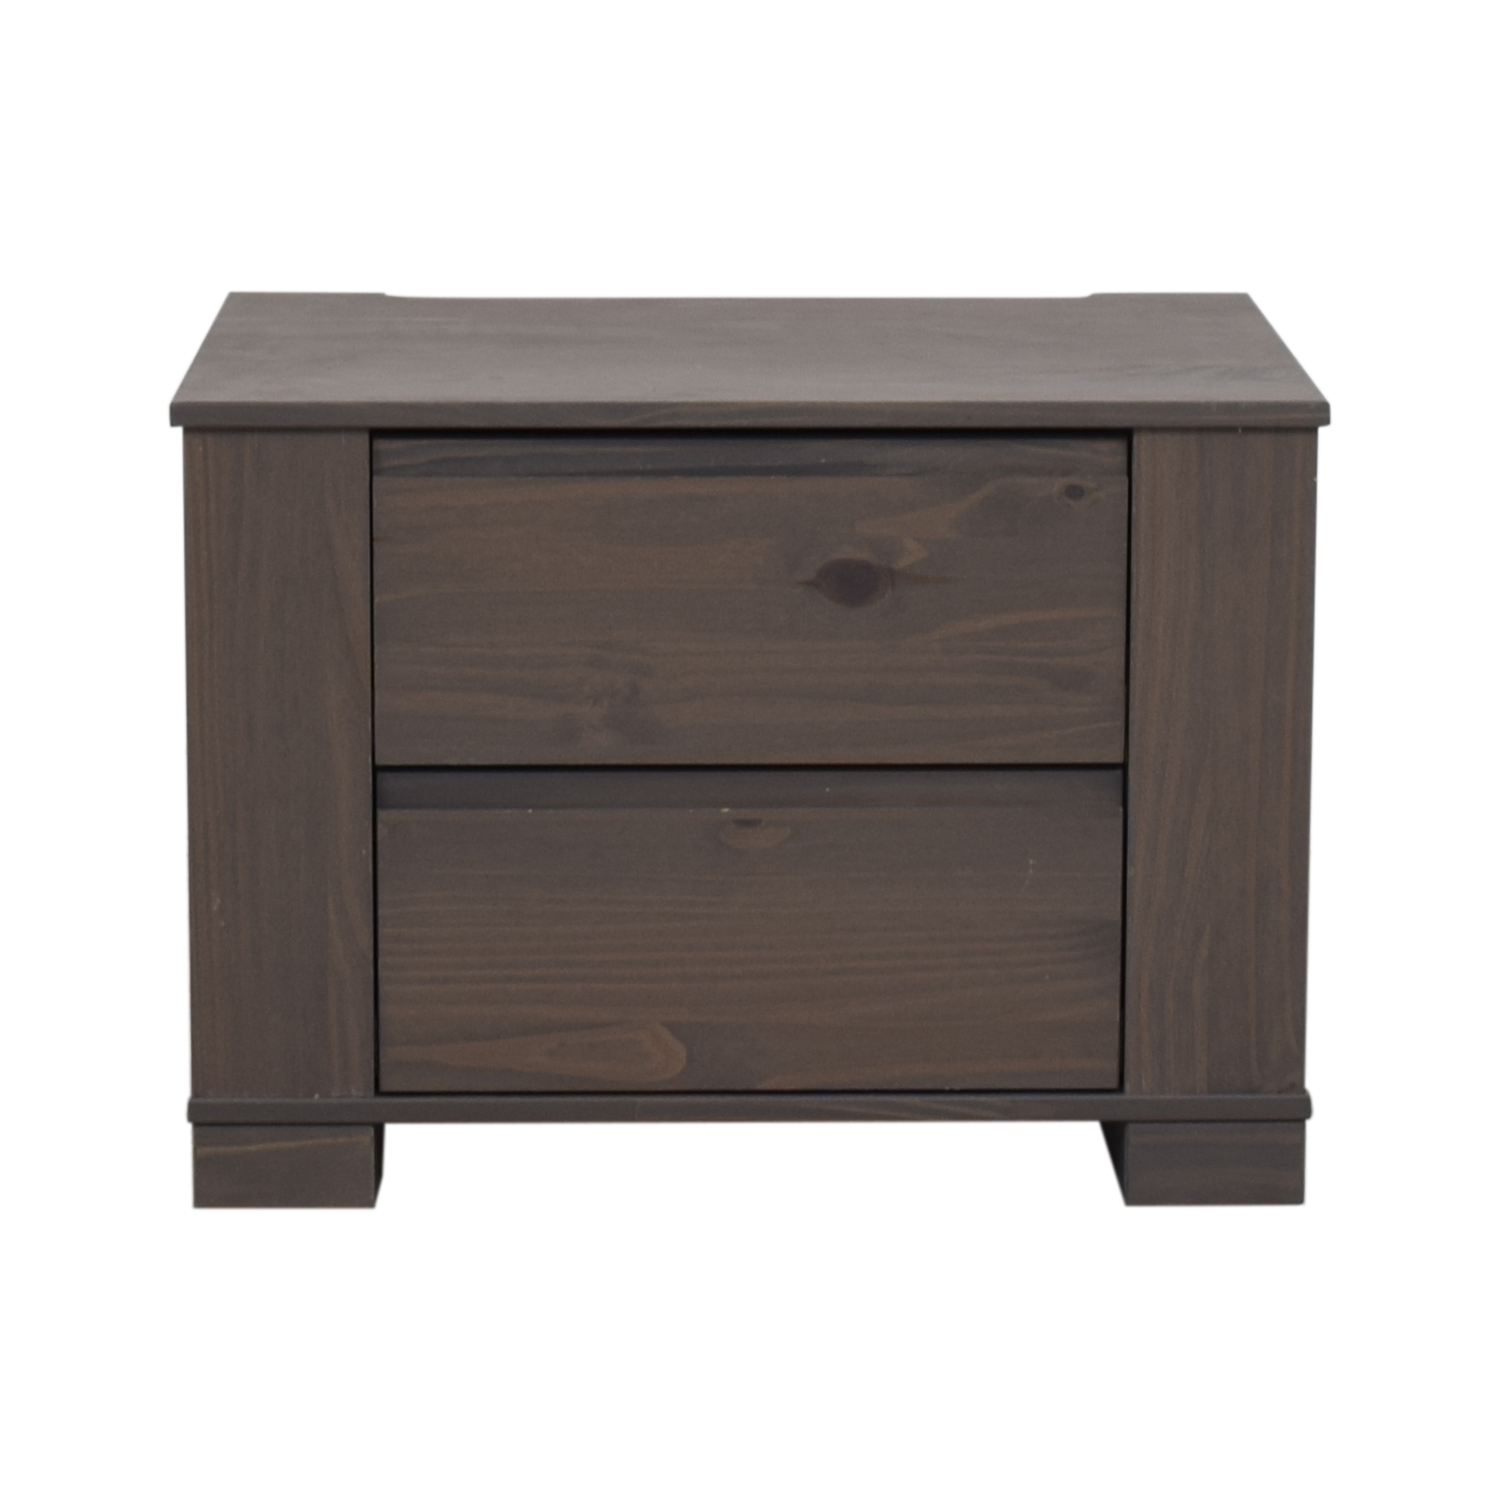 IKEA IKEA Gray Brown Hosteland Nightstand discount